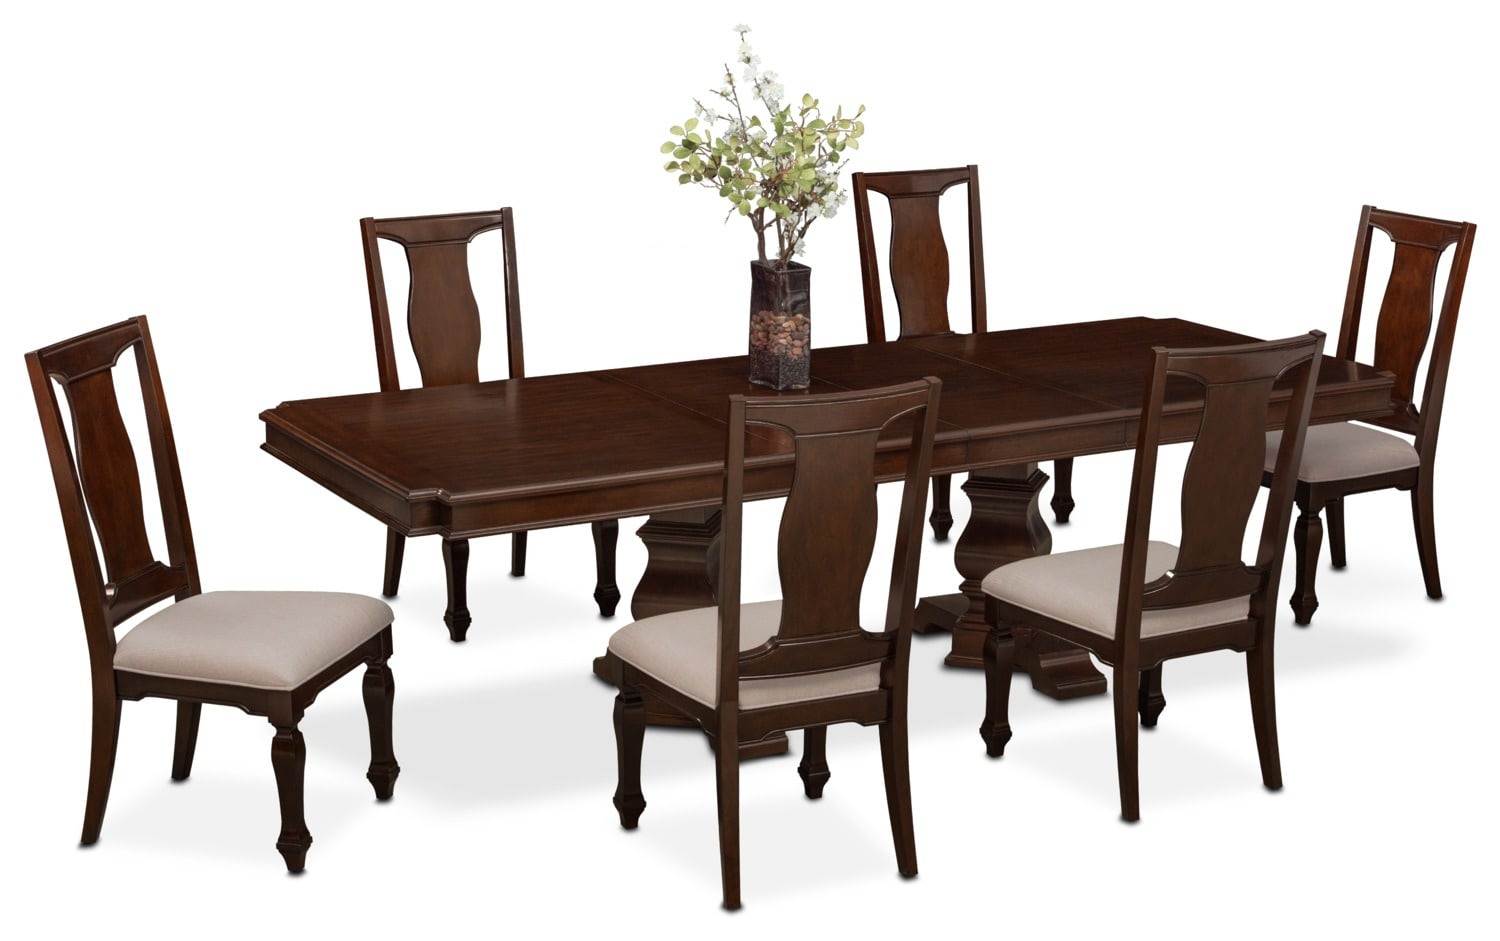 Lovely Dining Room Furniture   Vienna Dining Table And 6 Side Chairs   Merlot